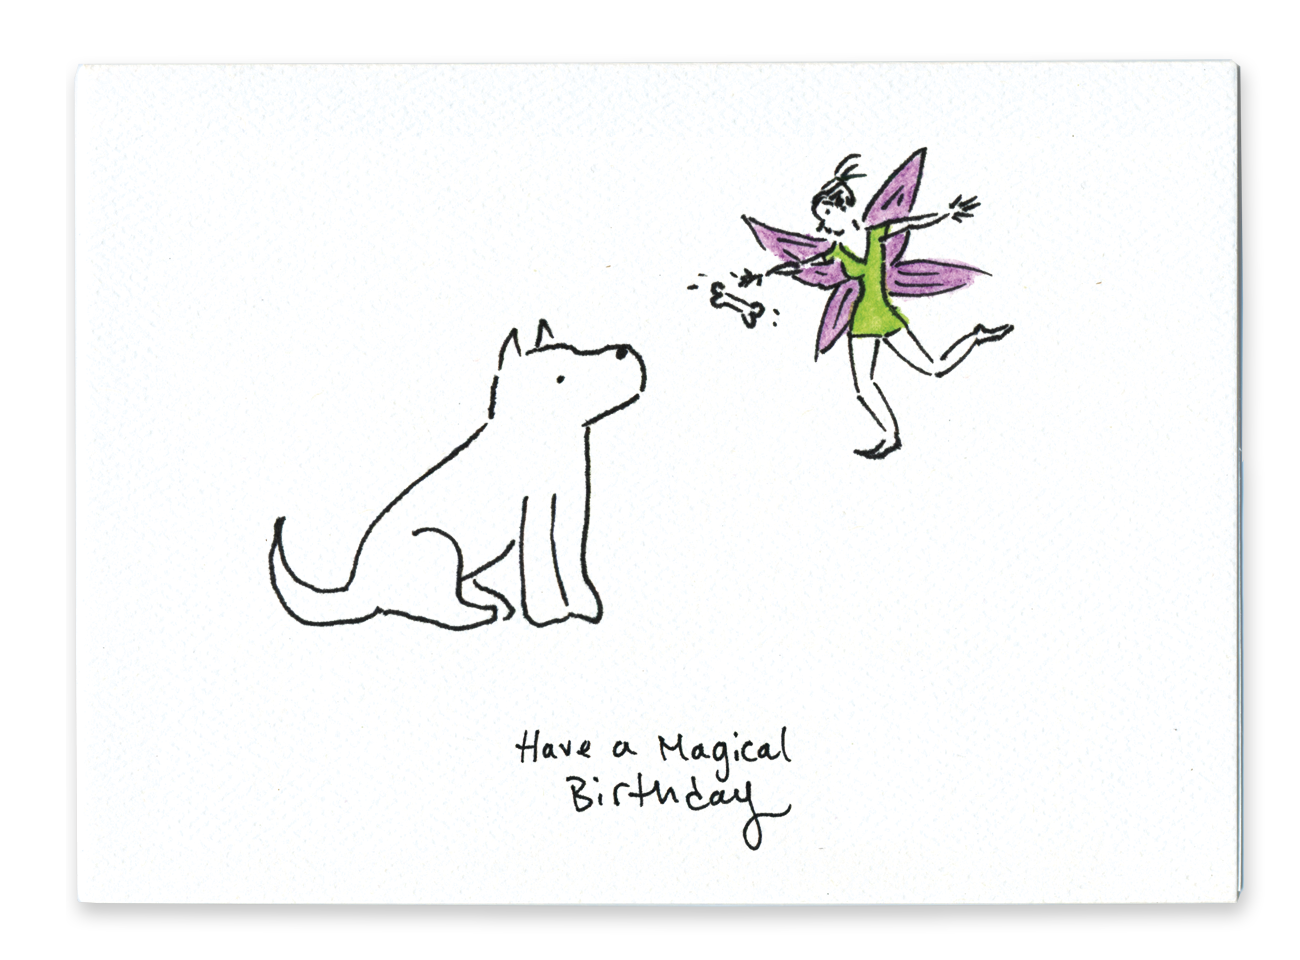 Have a Magical Birthday (Dog)